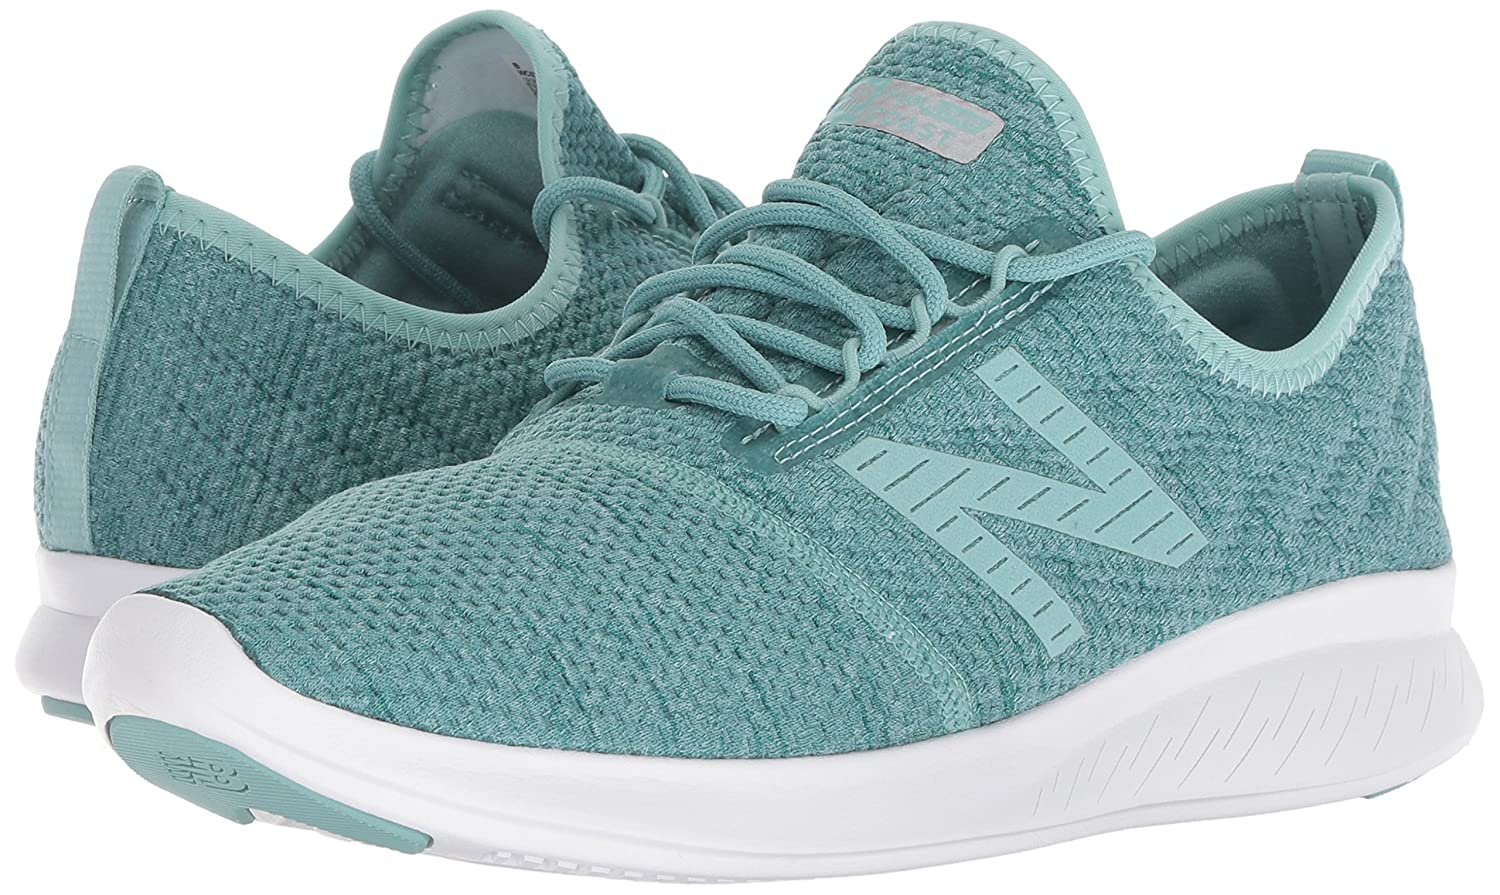 New Balance 6 Women's Coast V4 FuelCore Running Shoe B0771F8JNT 6 Balance D US|Mineral Sage ab84b7